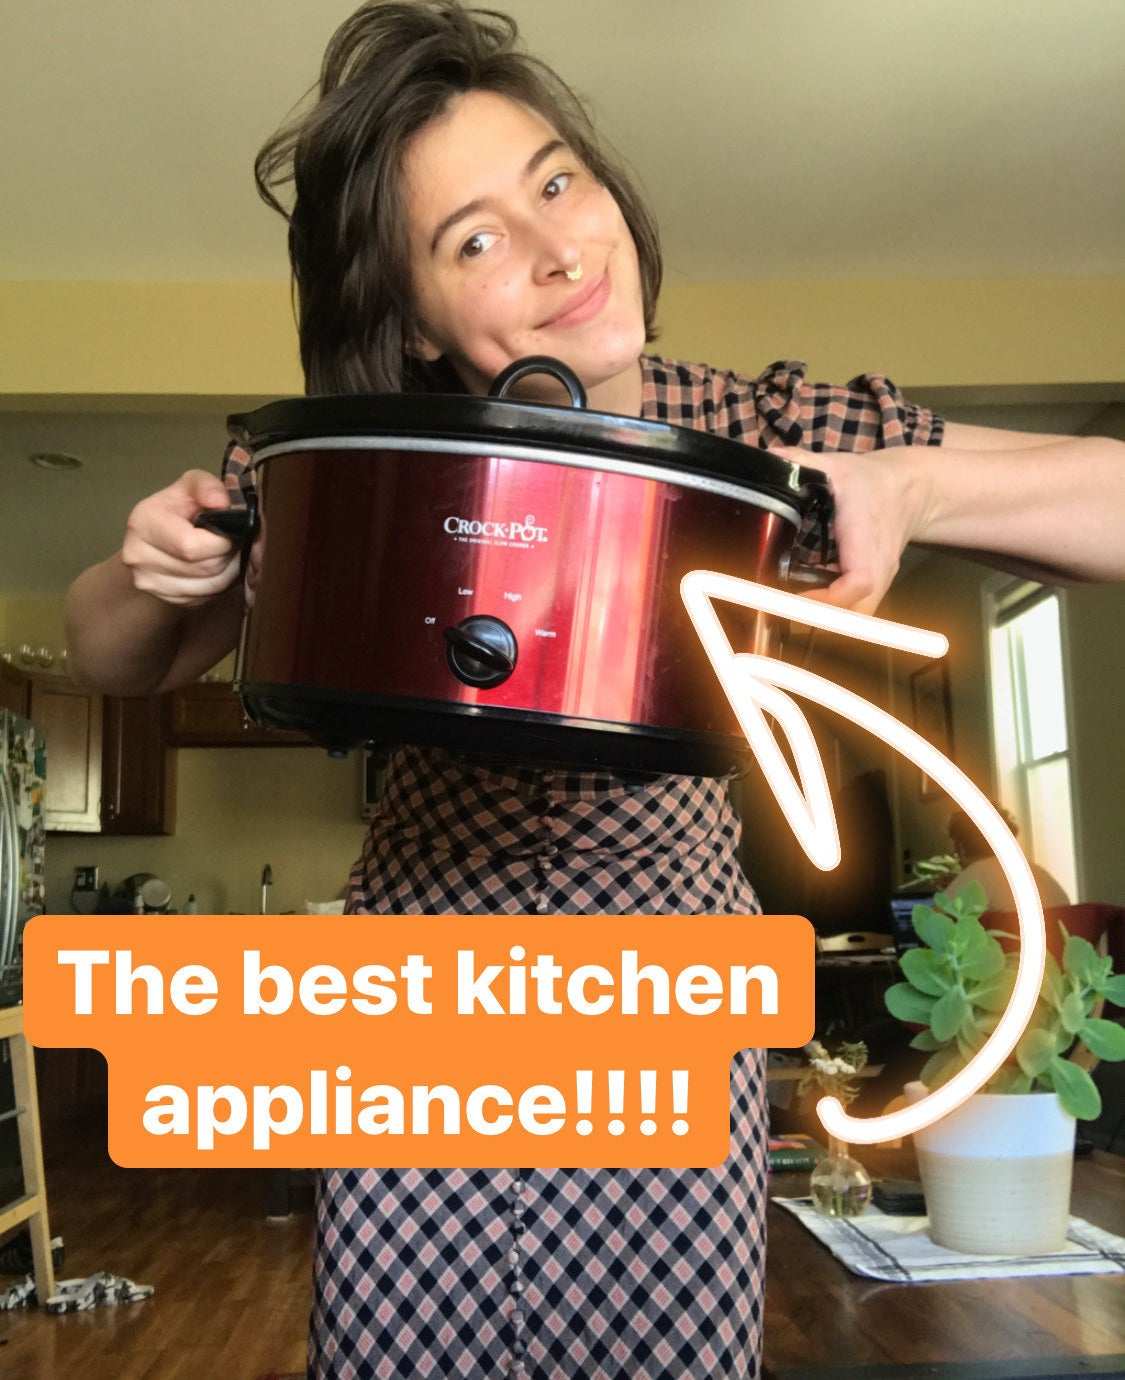 A person holding their Crock-Pot up in their kitchen